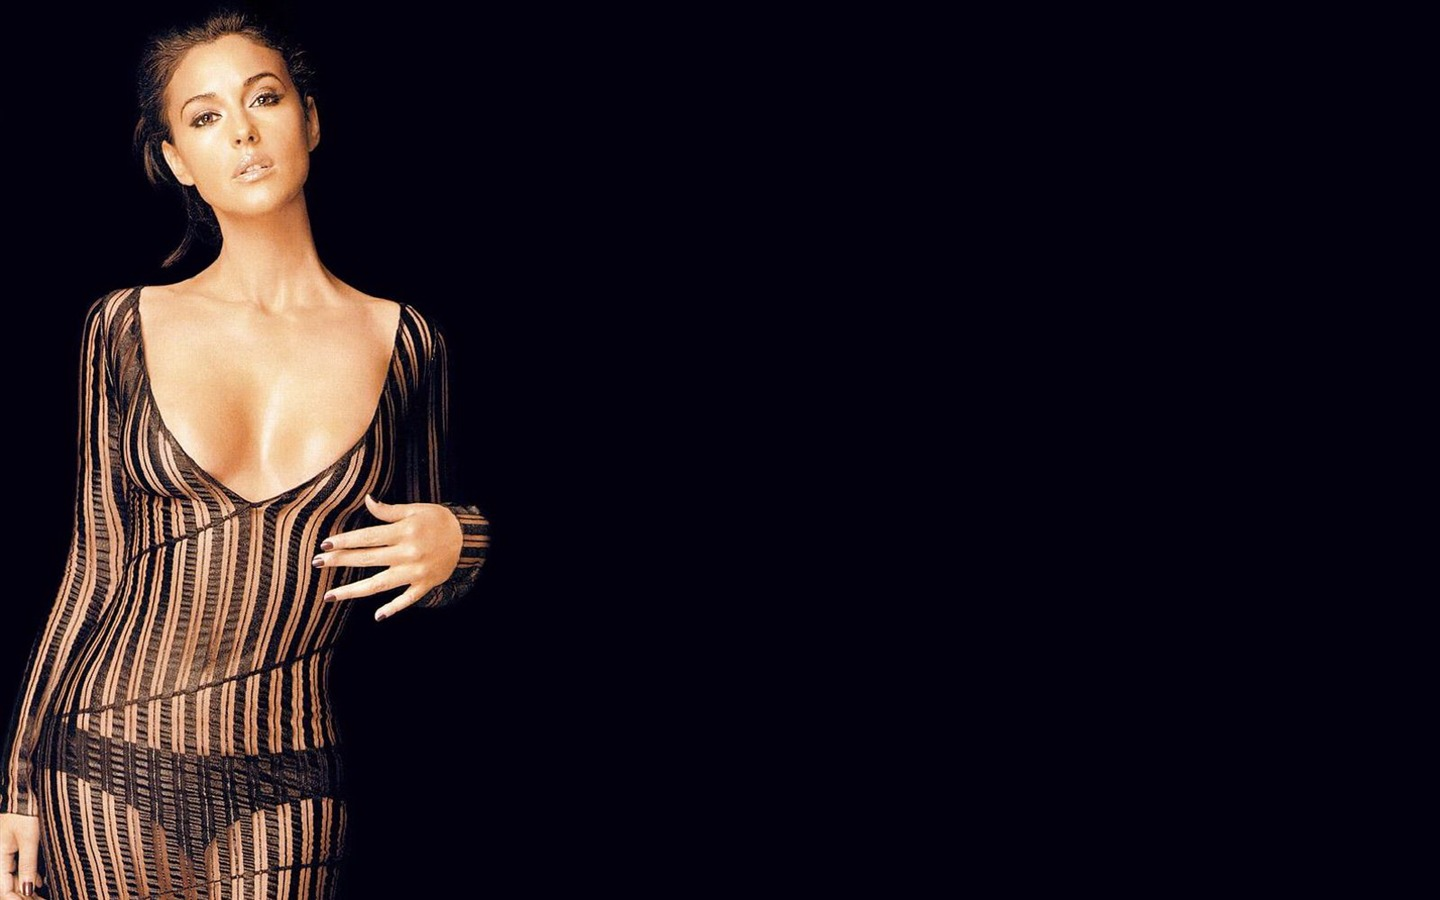 Monica Bellucci #008 - 1440x900 Wallpapers Pictures Photos Images